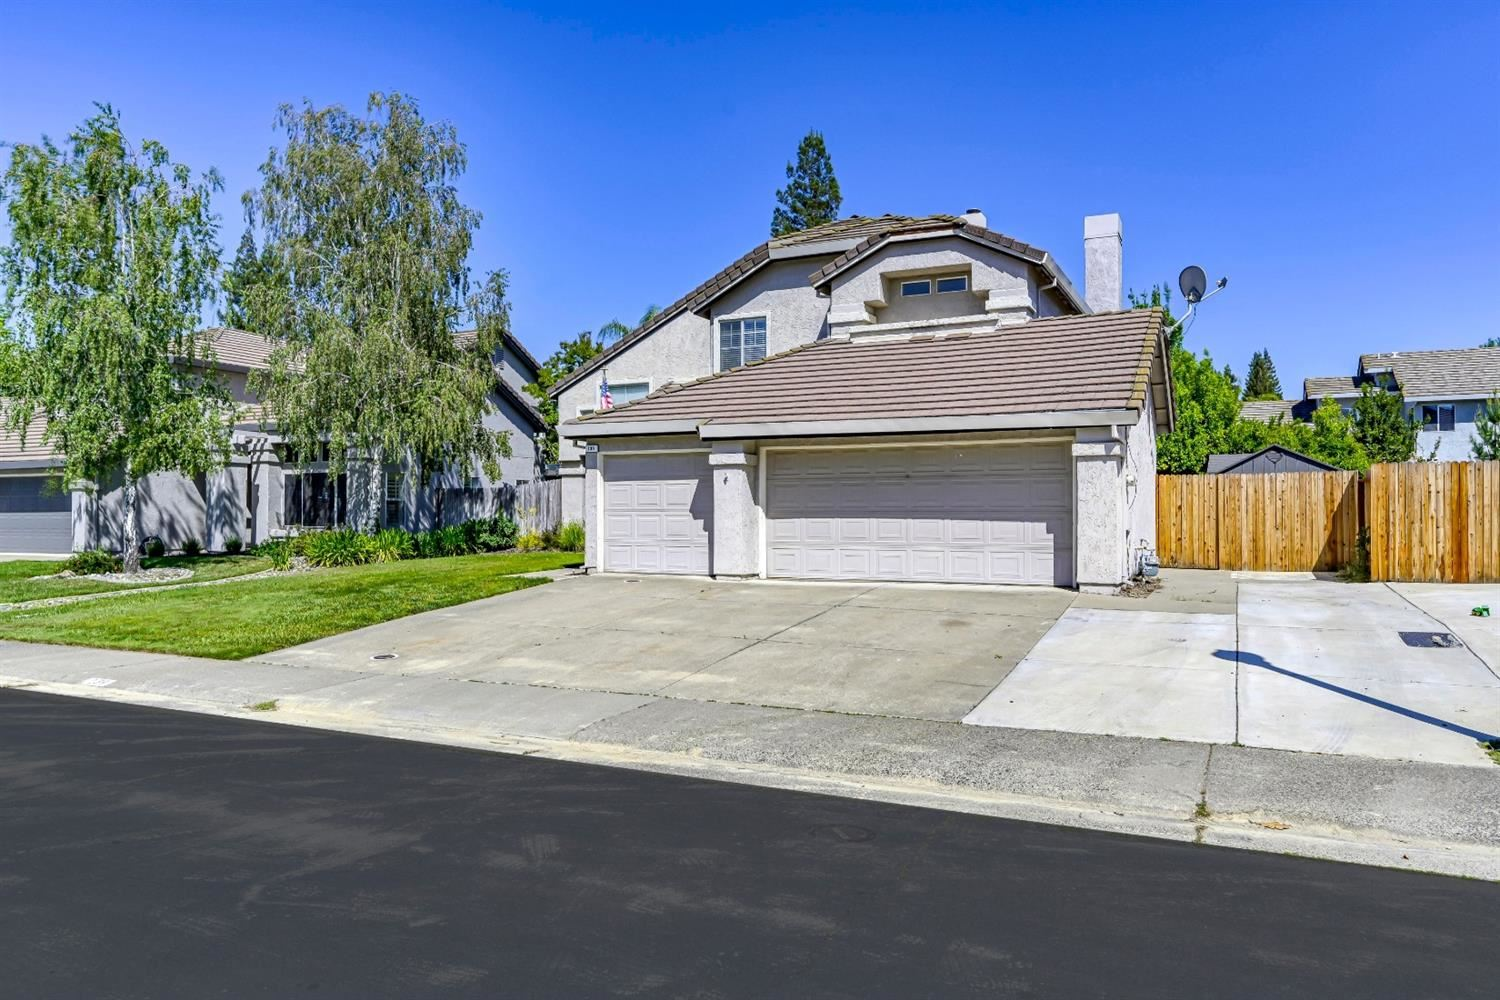 Photo of 139 Thorndike Way, Folsom, CA 95630 (MLS # 221048624)